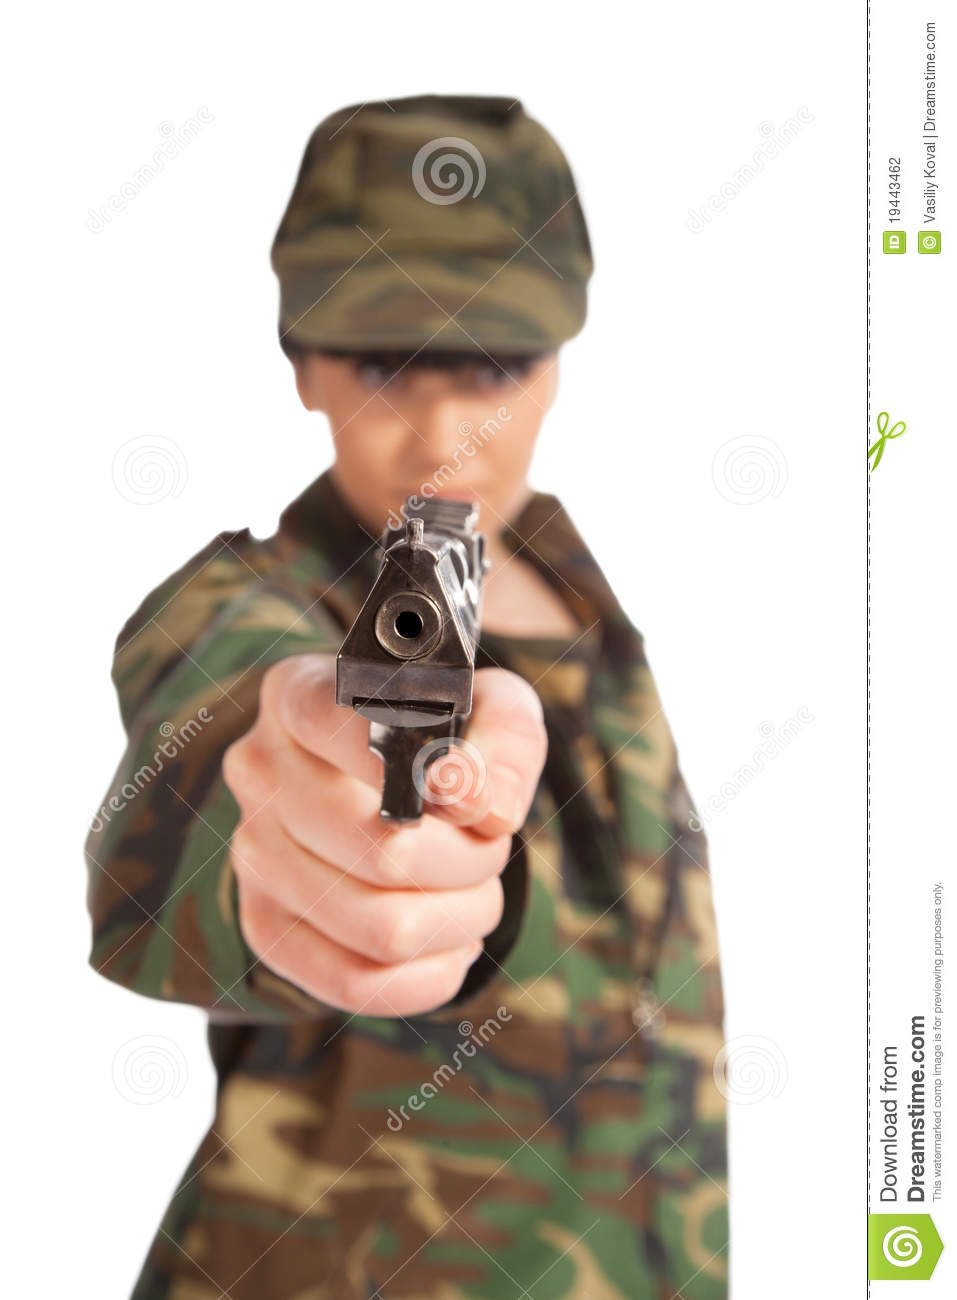 Military naked army girl holding a gun confirm